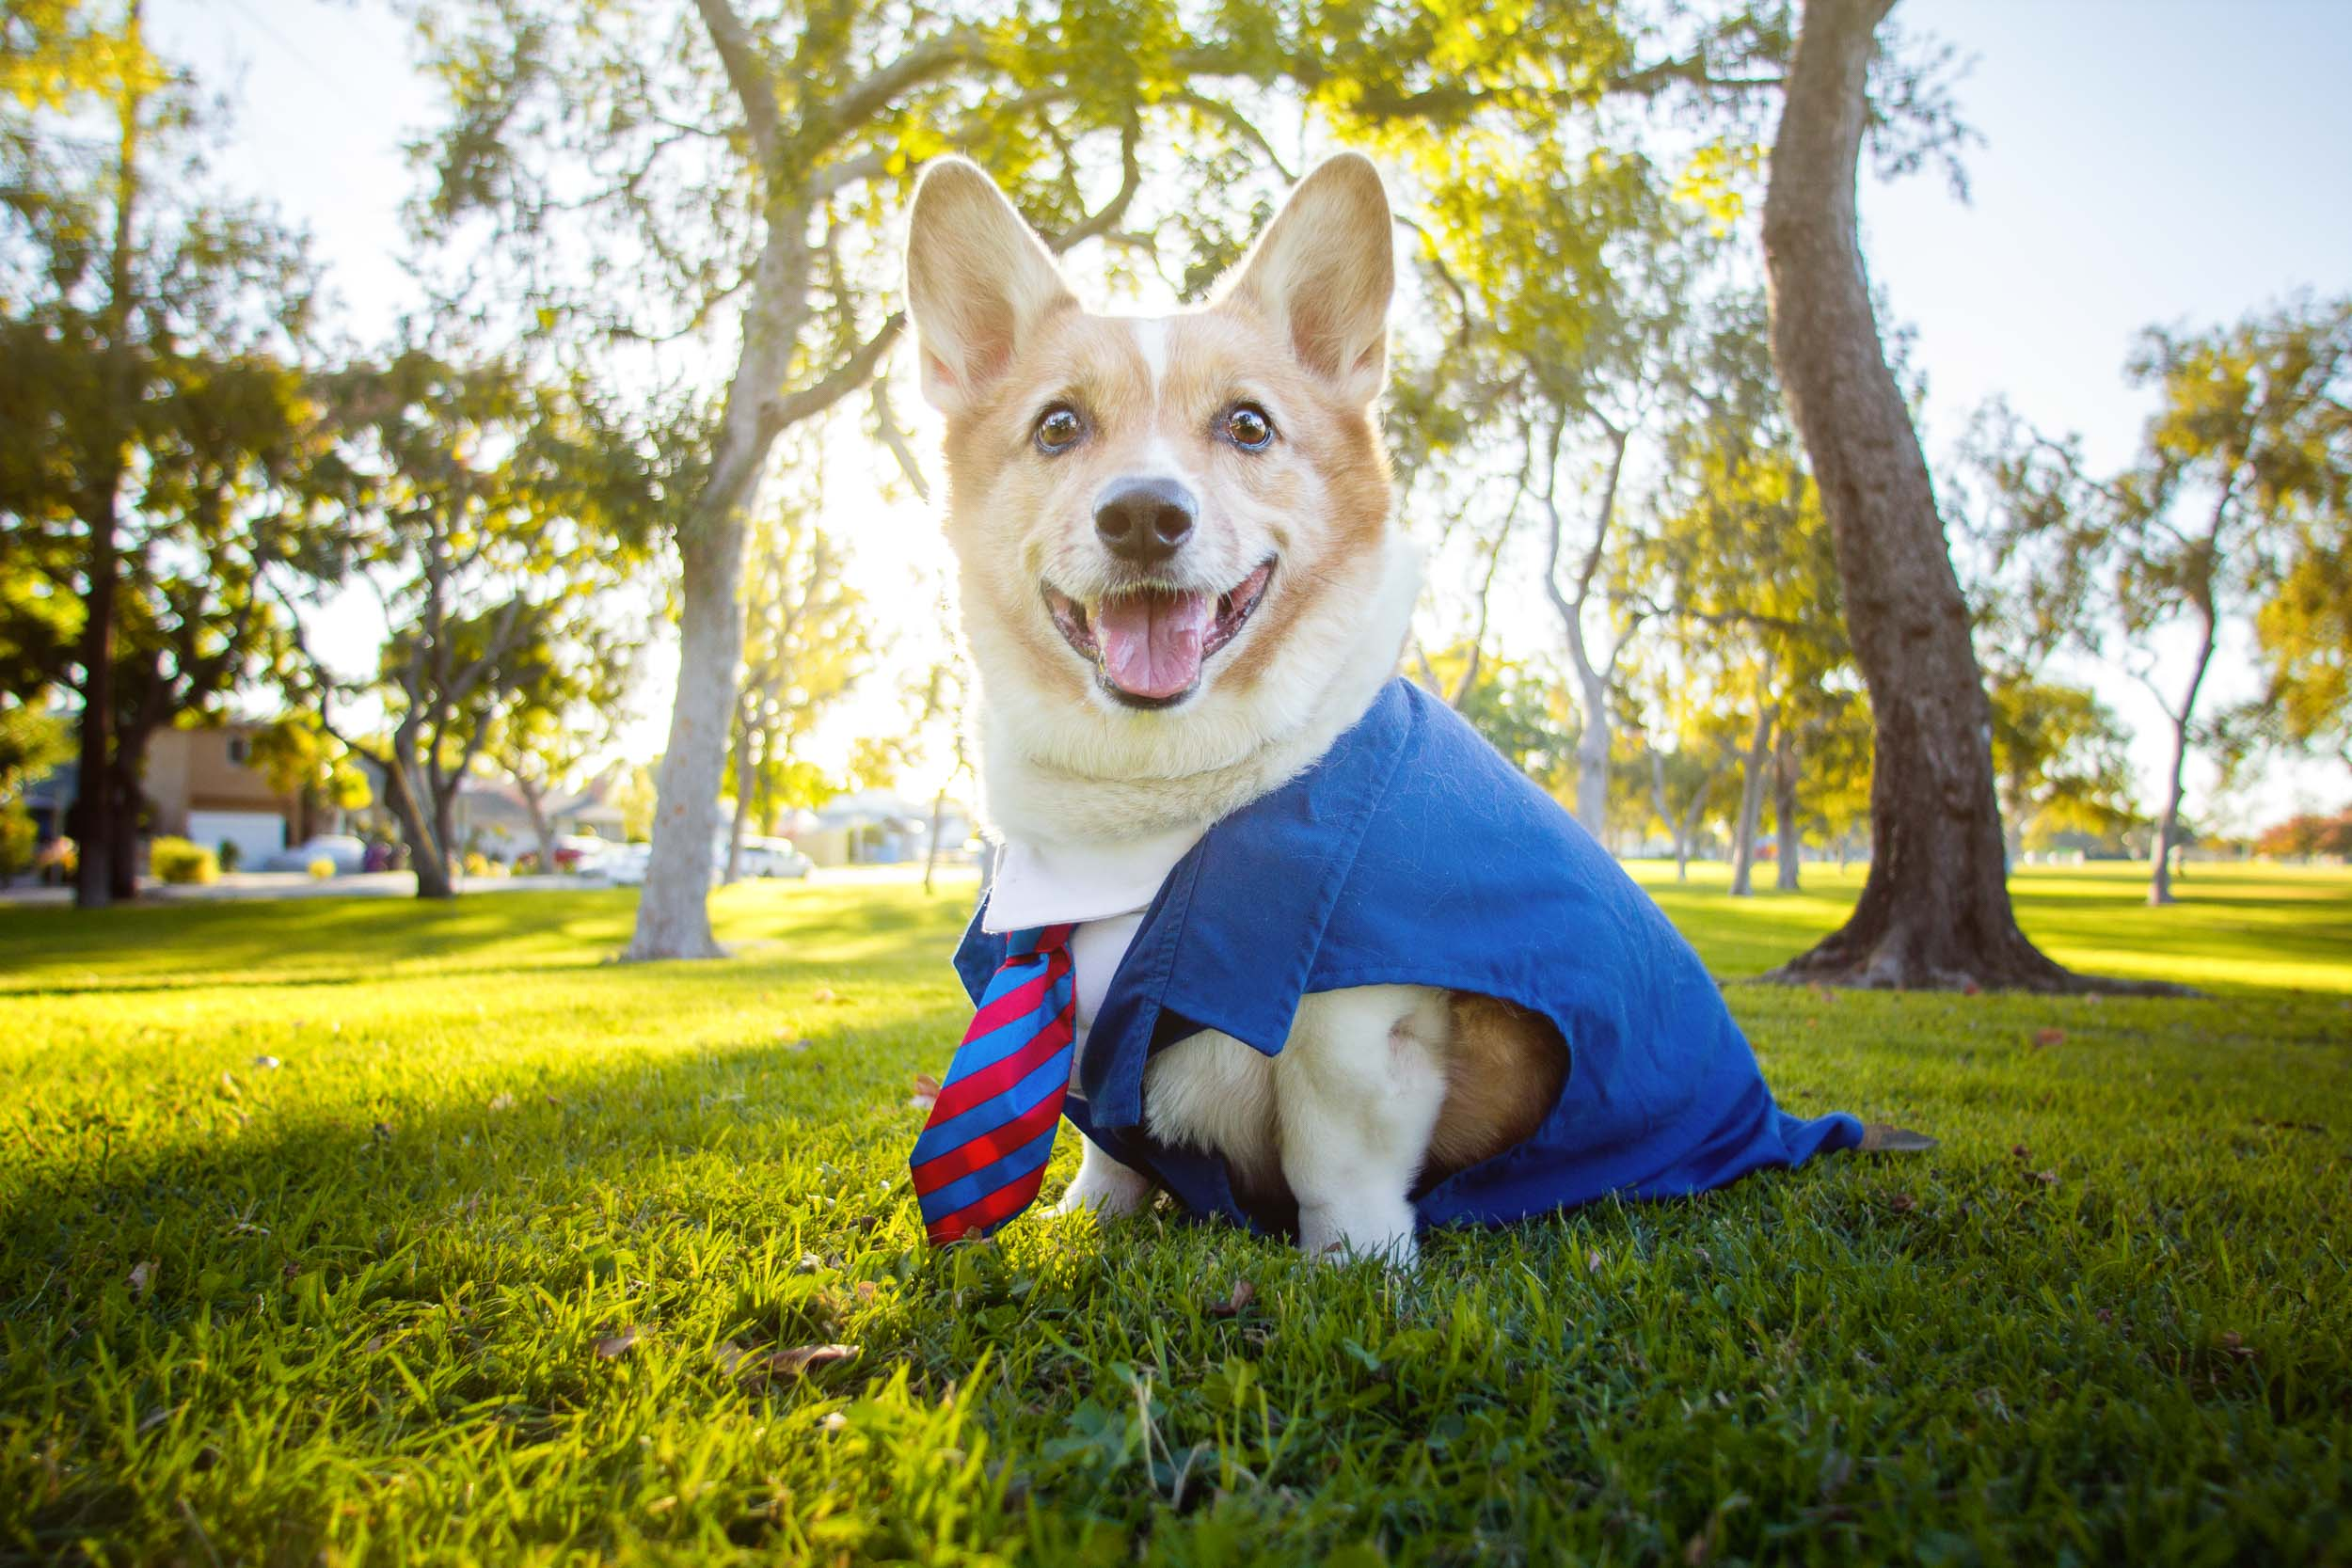 Mr. Pickles, the founder of So Cal Corgi Beach Day, is modeling for his business portraits.